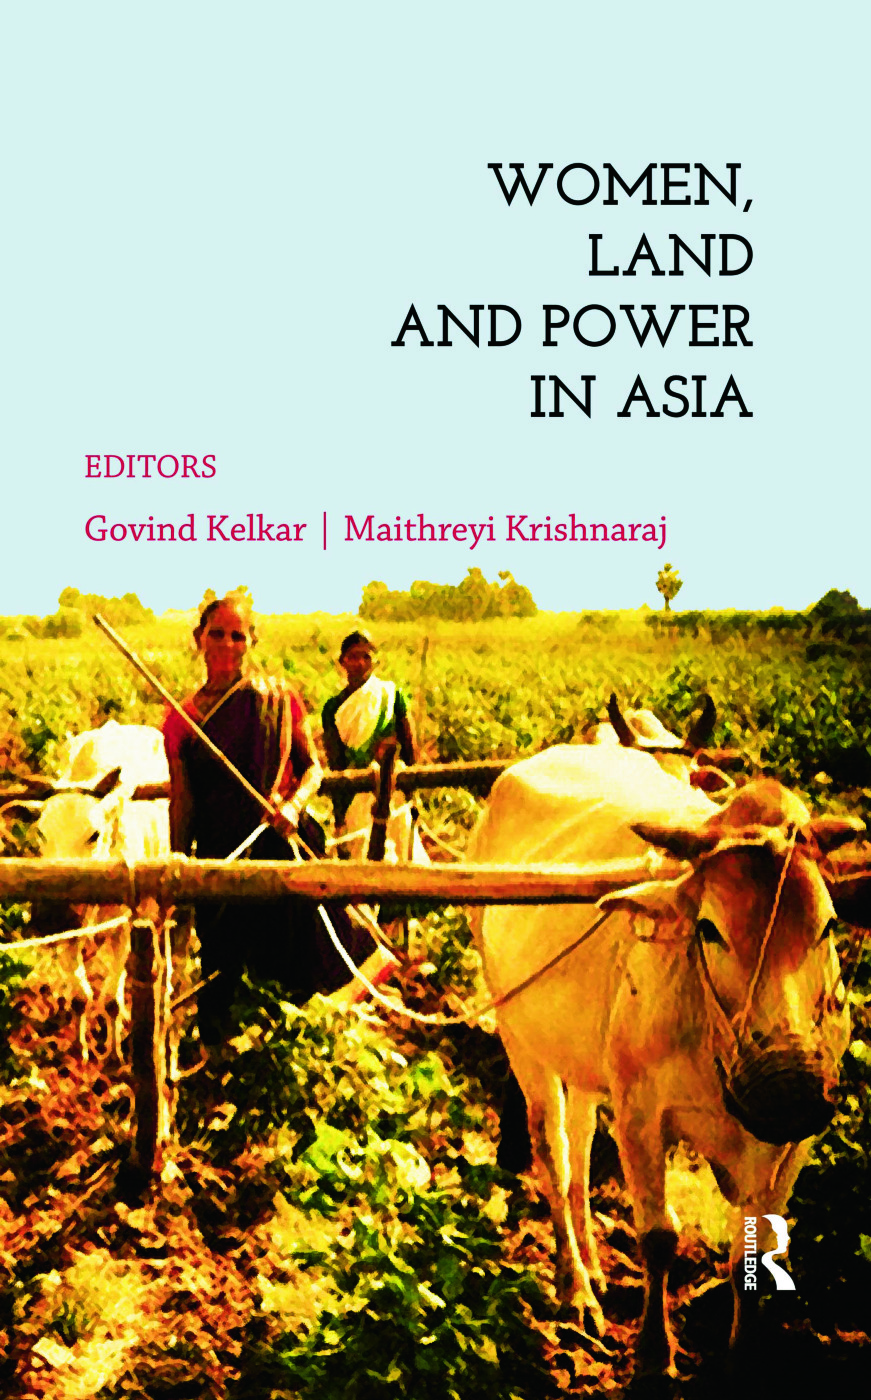 Women, Land and Power in Asia